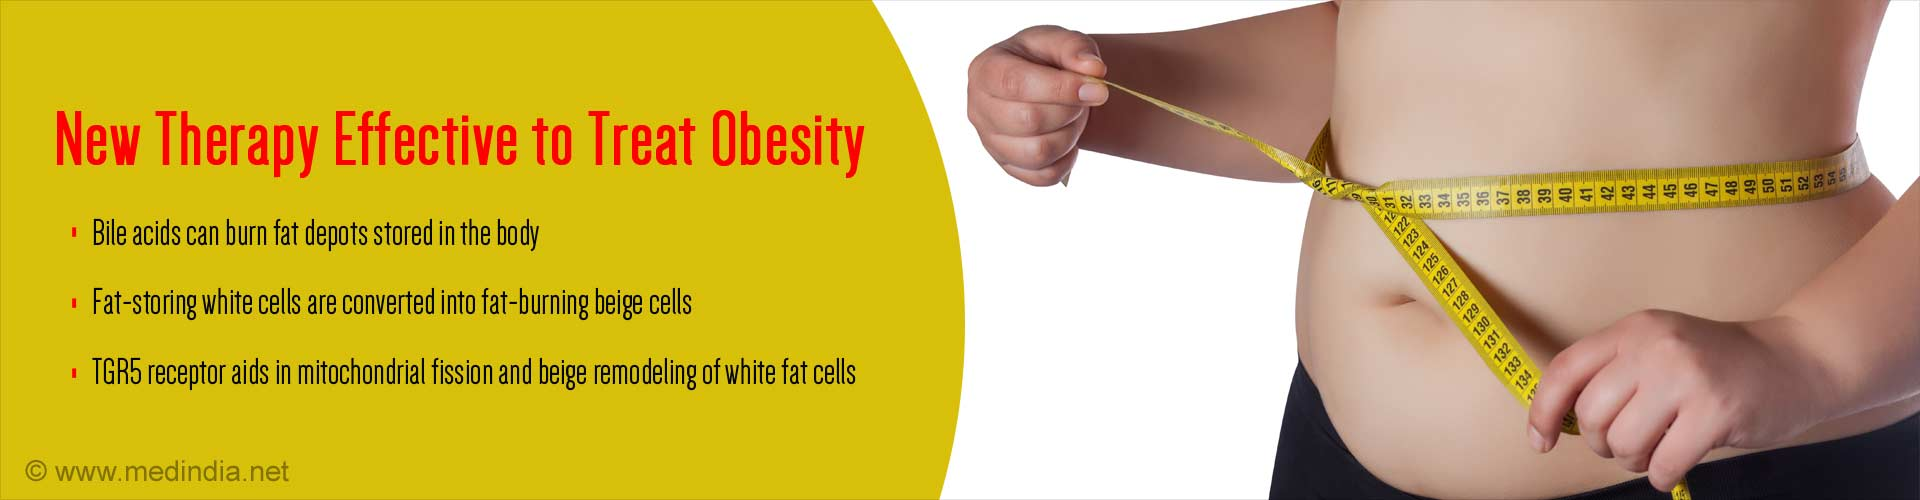 Bile Acids can Help Treat Obesity